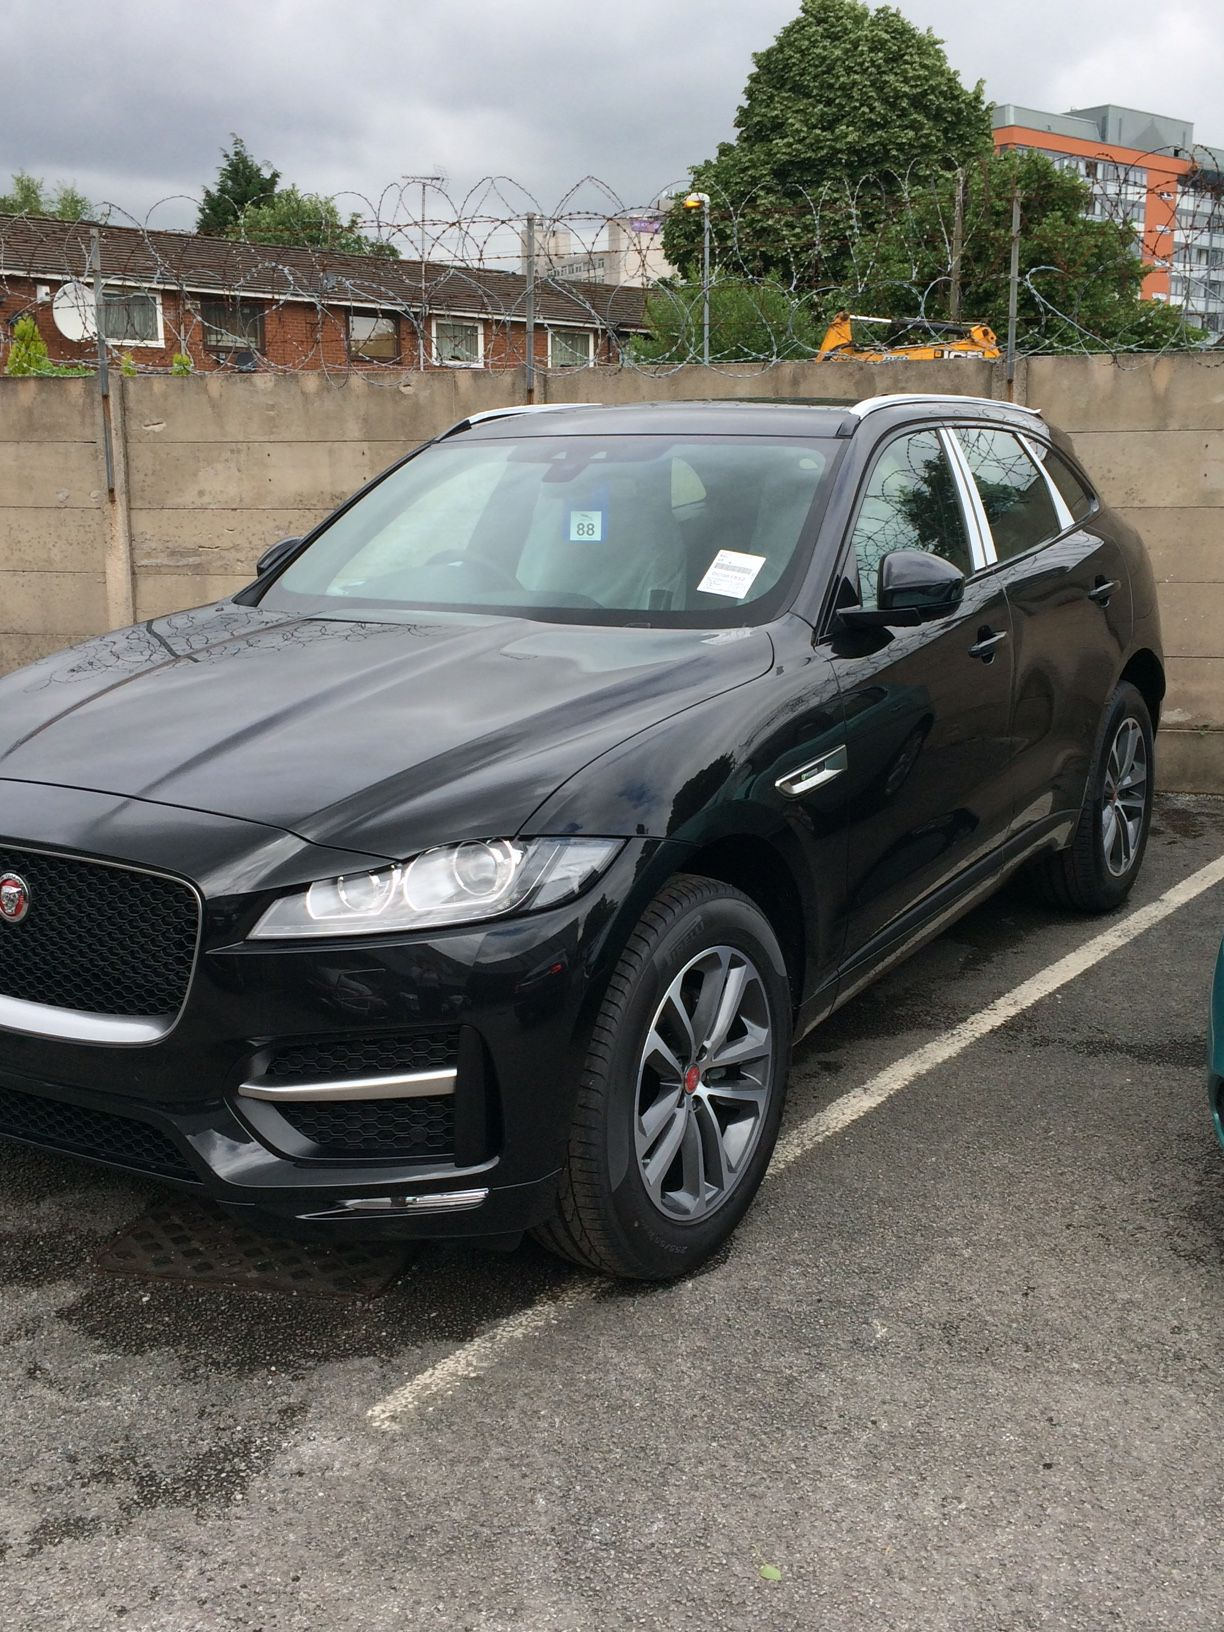 The Jaguar F Pace Carleasing Deal One Of The Many Cars Available To Lease At Www Carlease Uk Com Car Lease Jaguar Jaguar Car